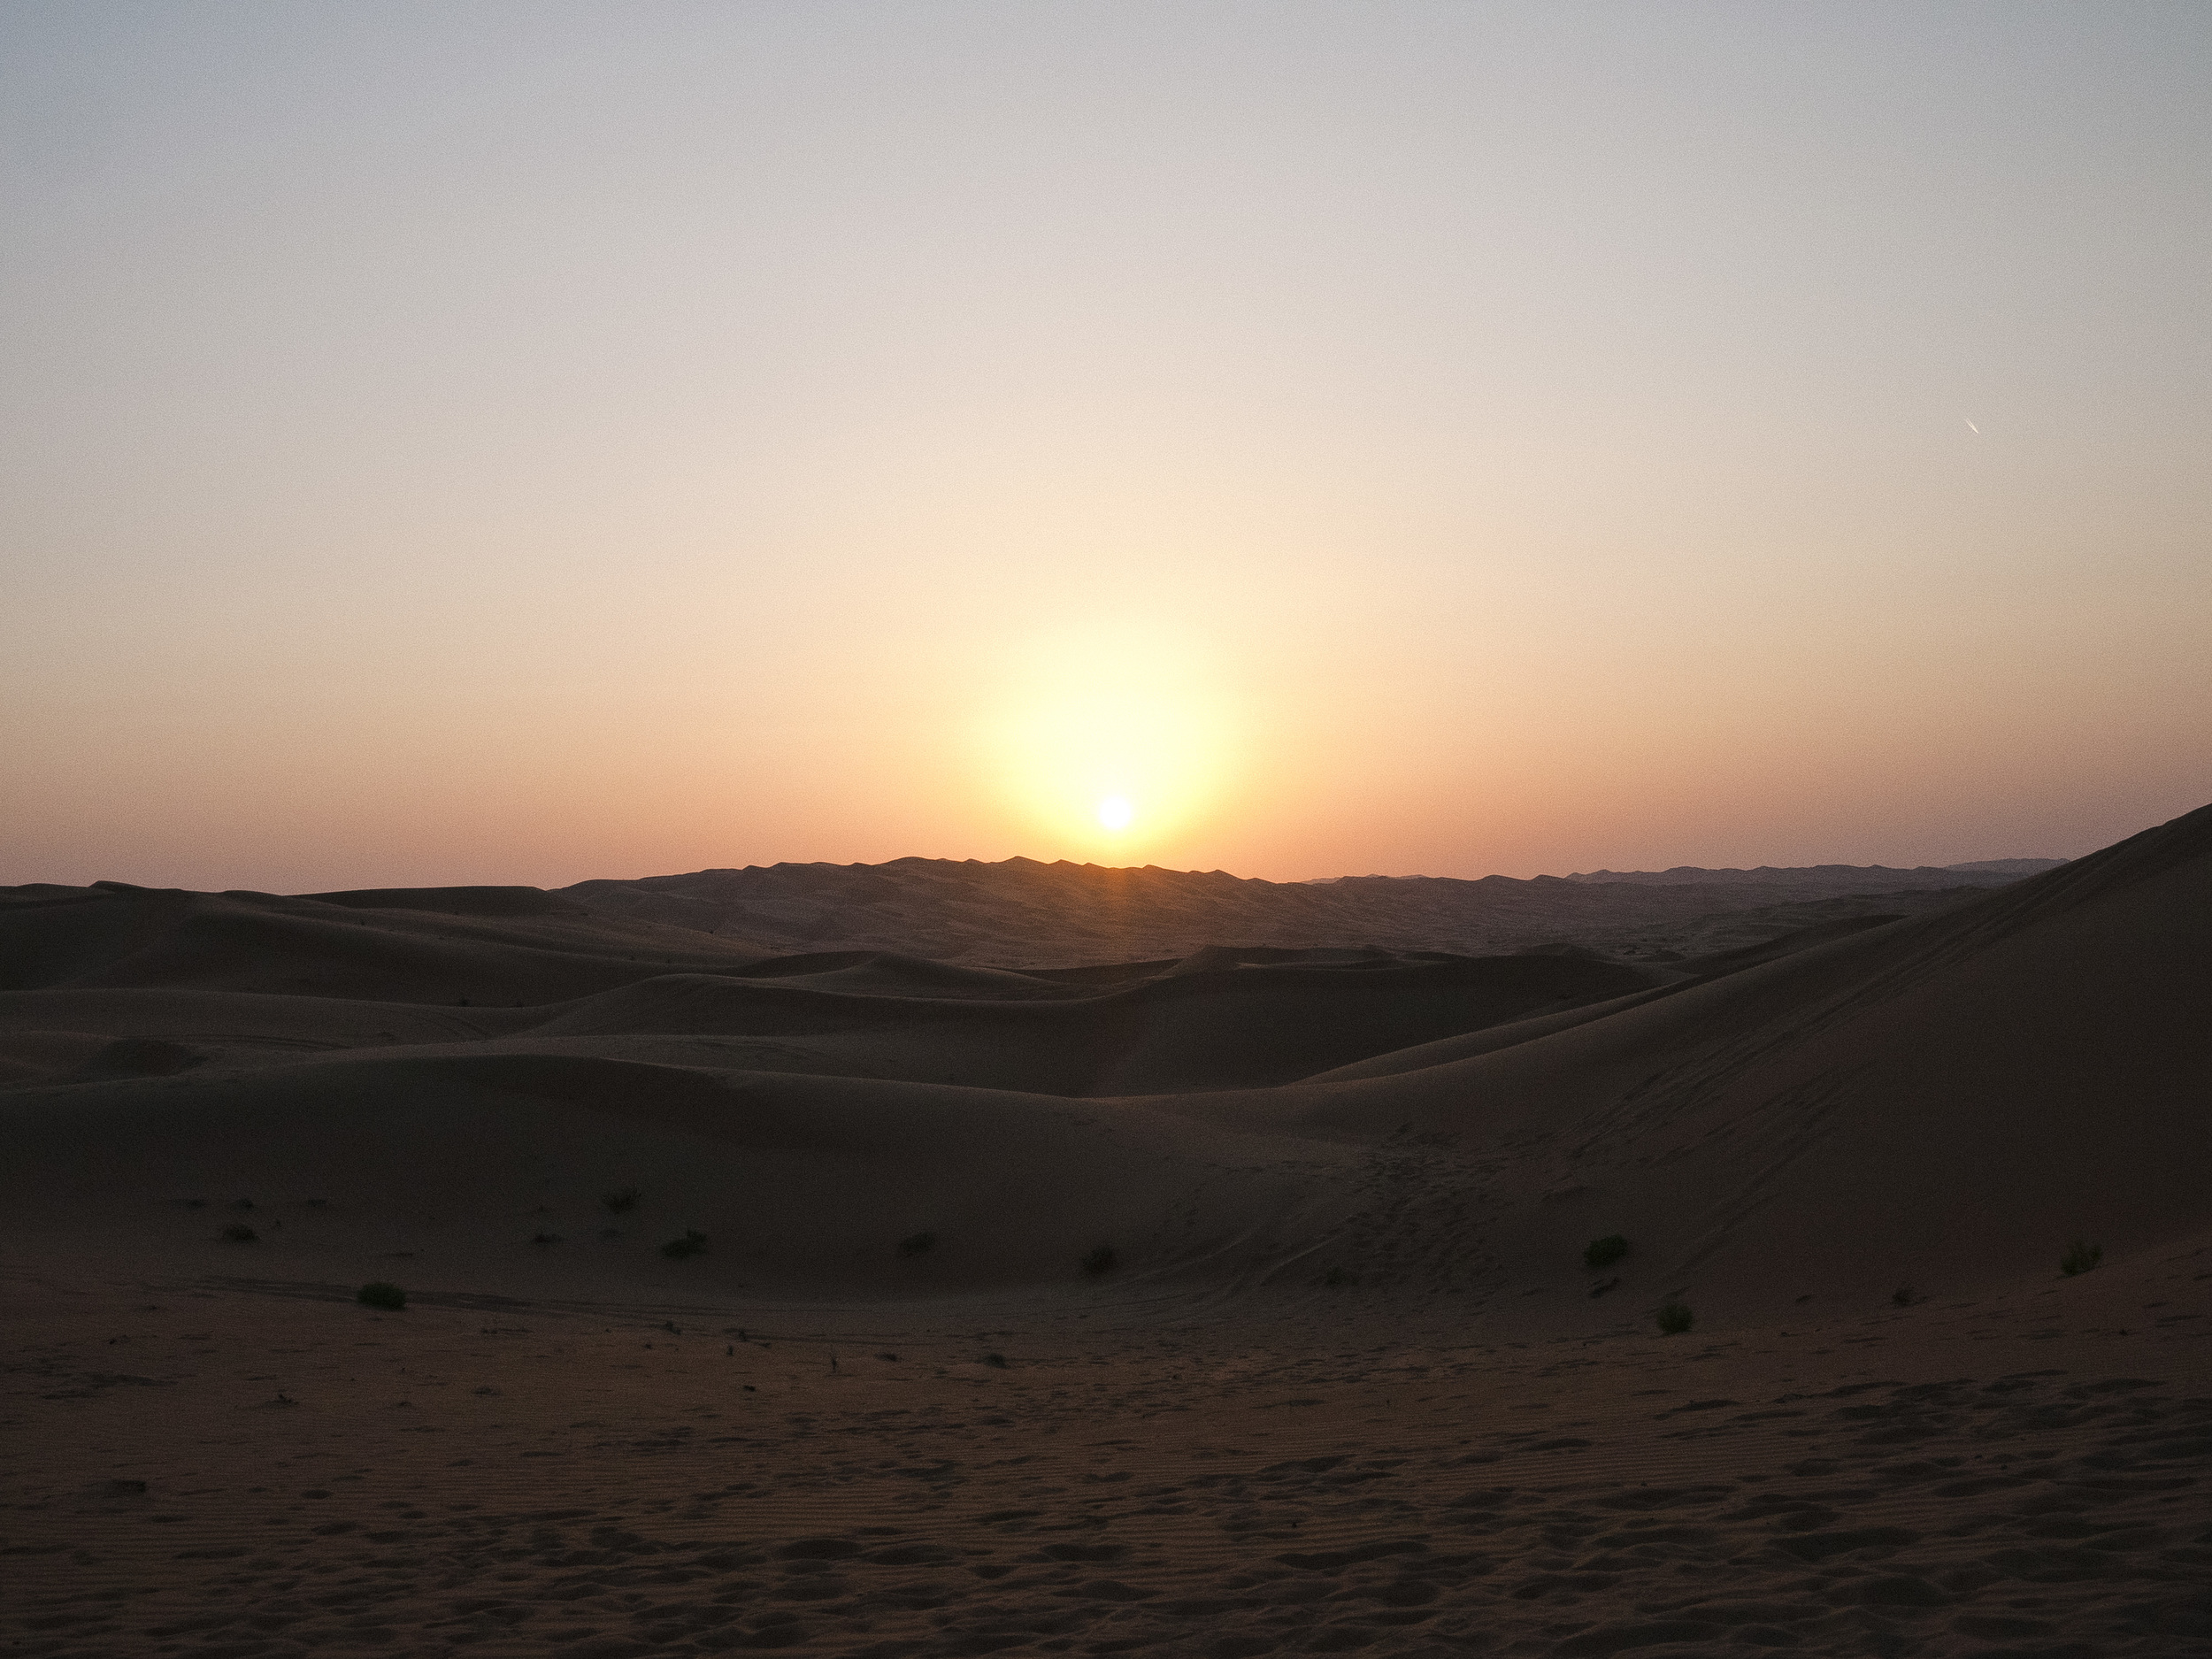 Sunset at Liwa Desert